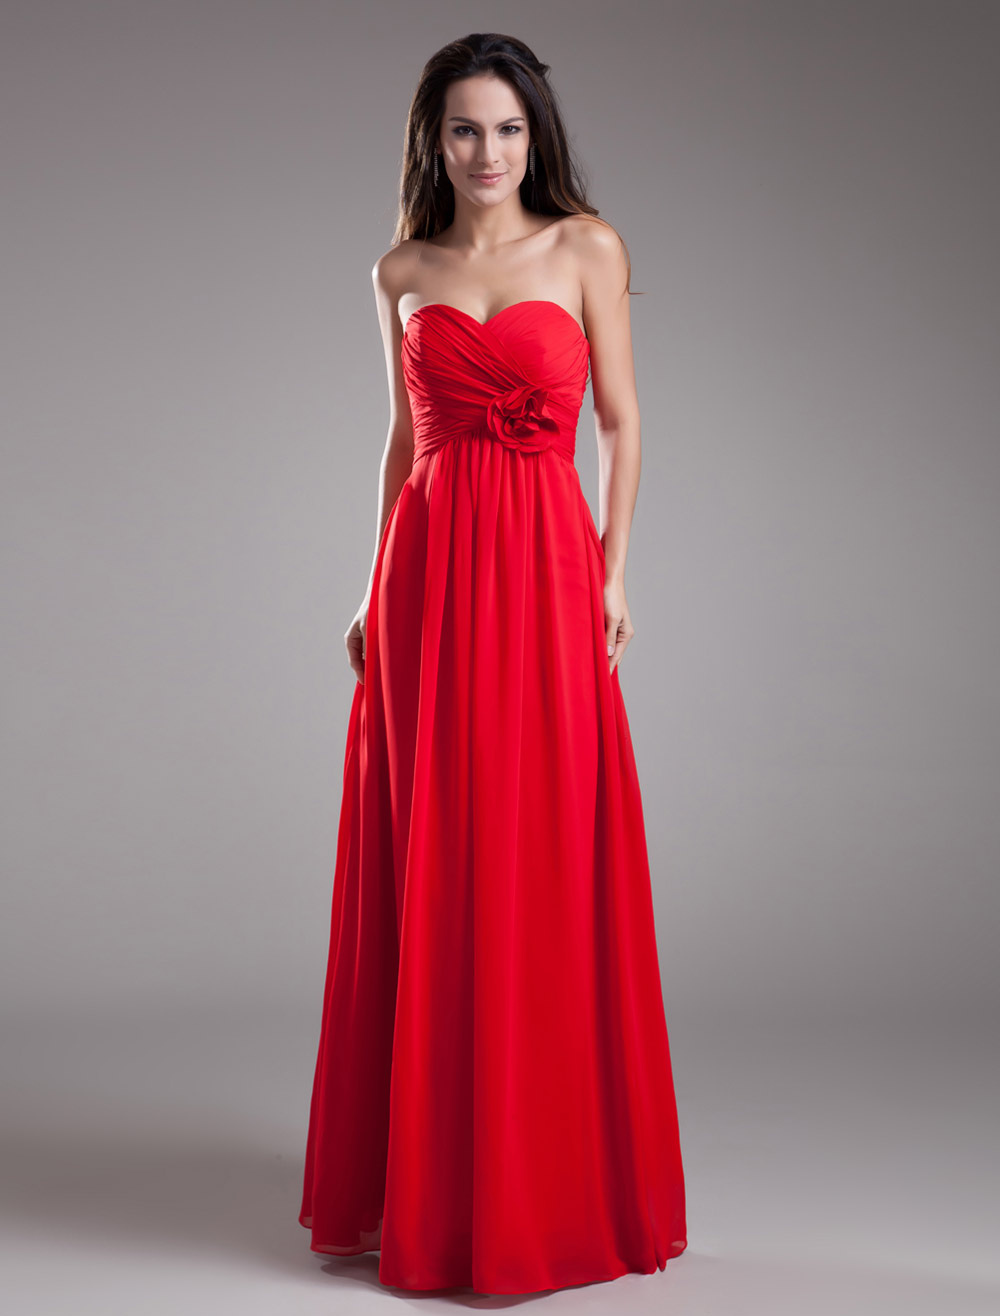 Beautiful A-line Red Chiffon Flower Sweetheart Neck Floor-Length Bridesmaid Dress For Wedding